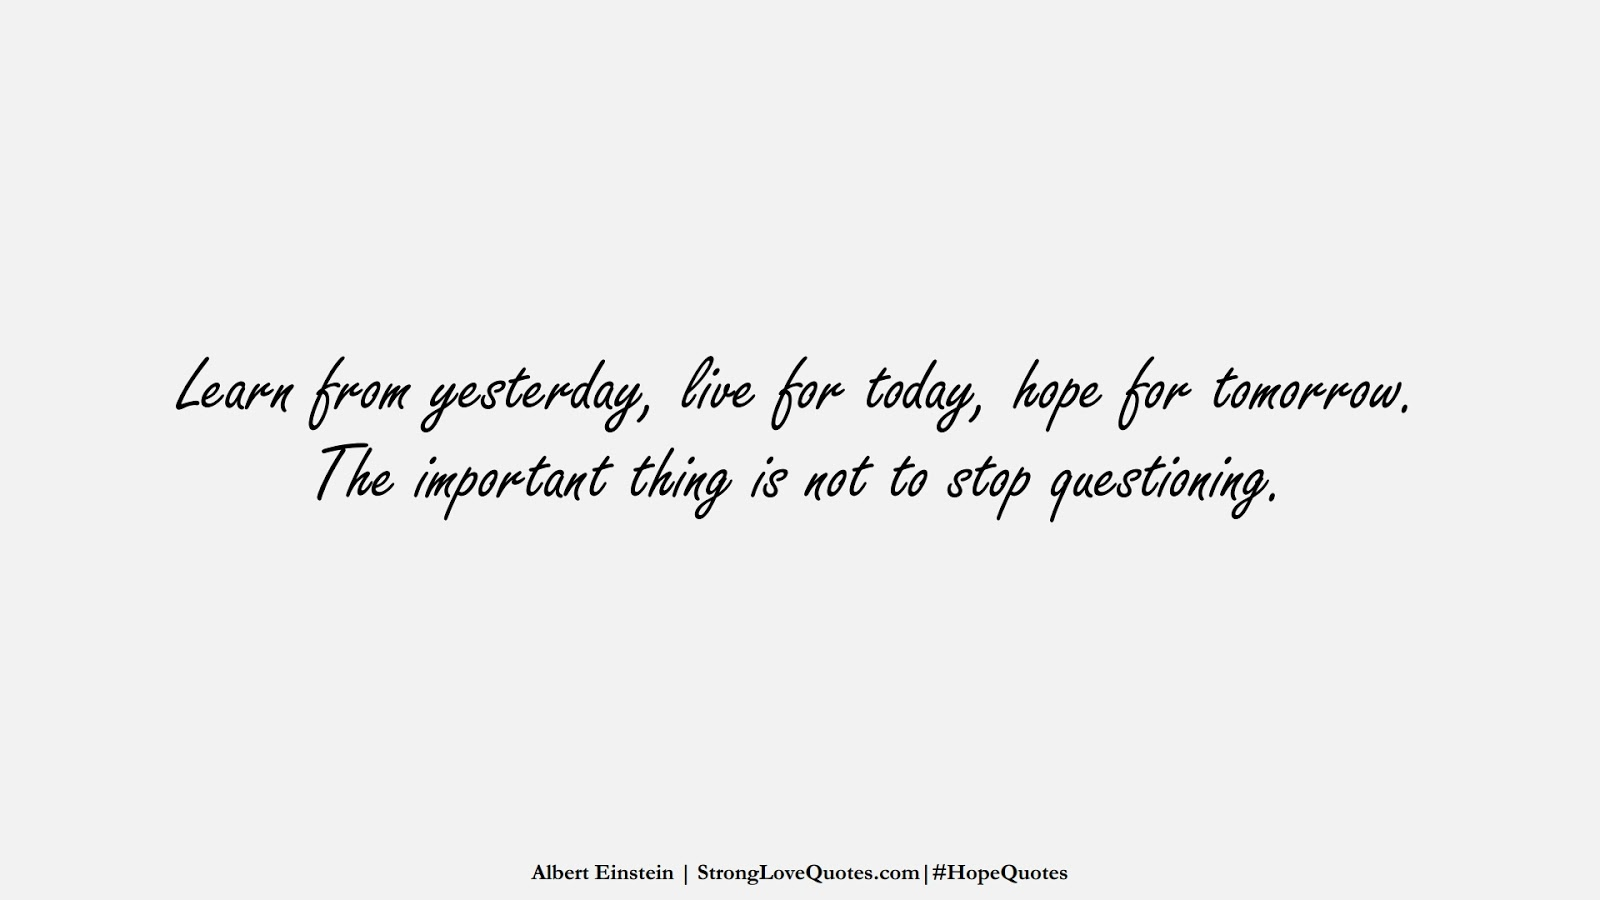 Learn from yesterday, live for today, hope for tomorrow. The important thing is not to stop questioning. (Albert Einstein);  #HopeQuotes